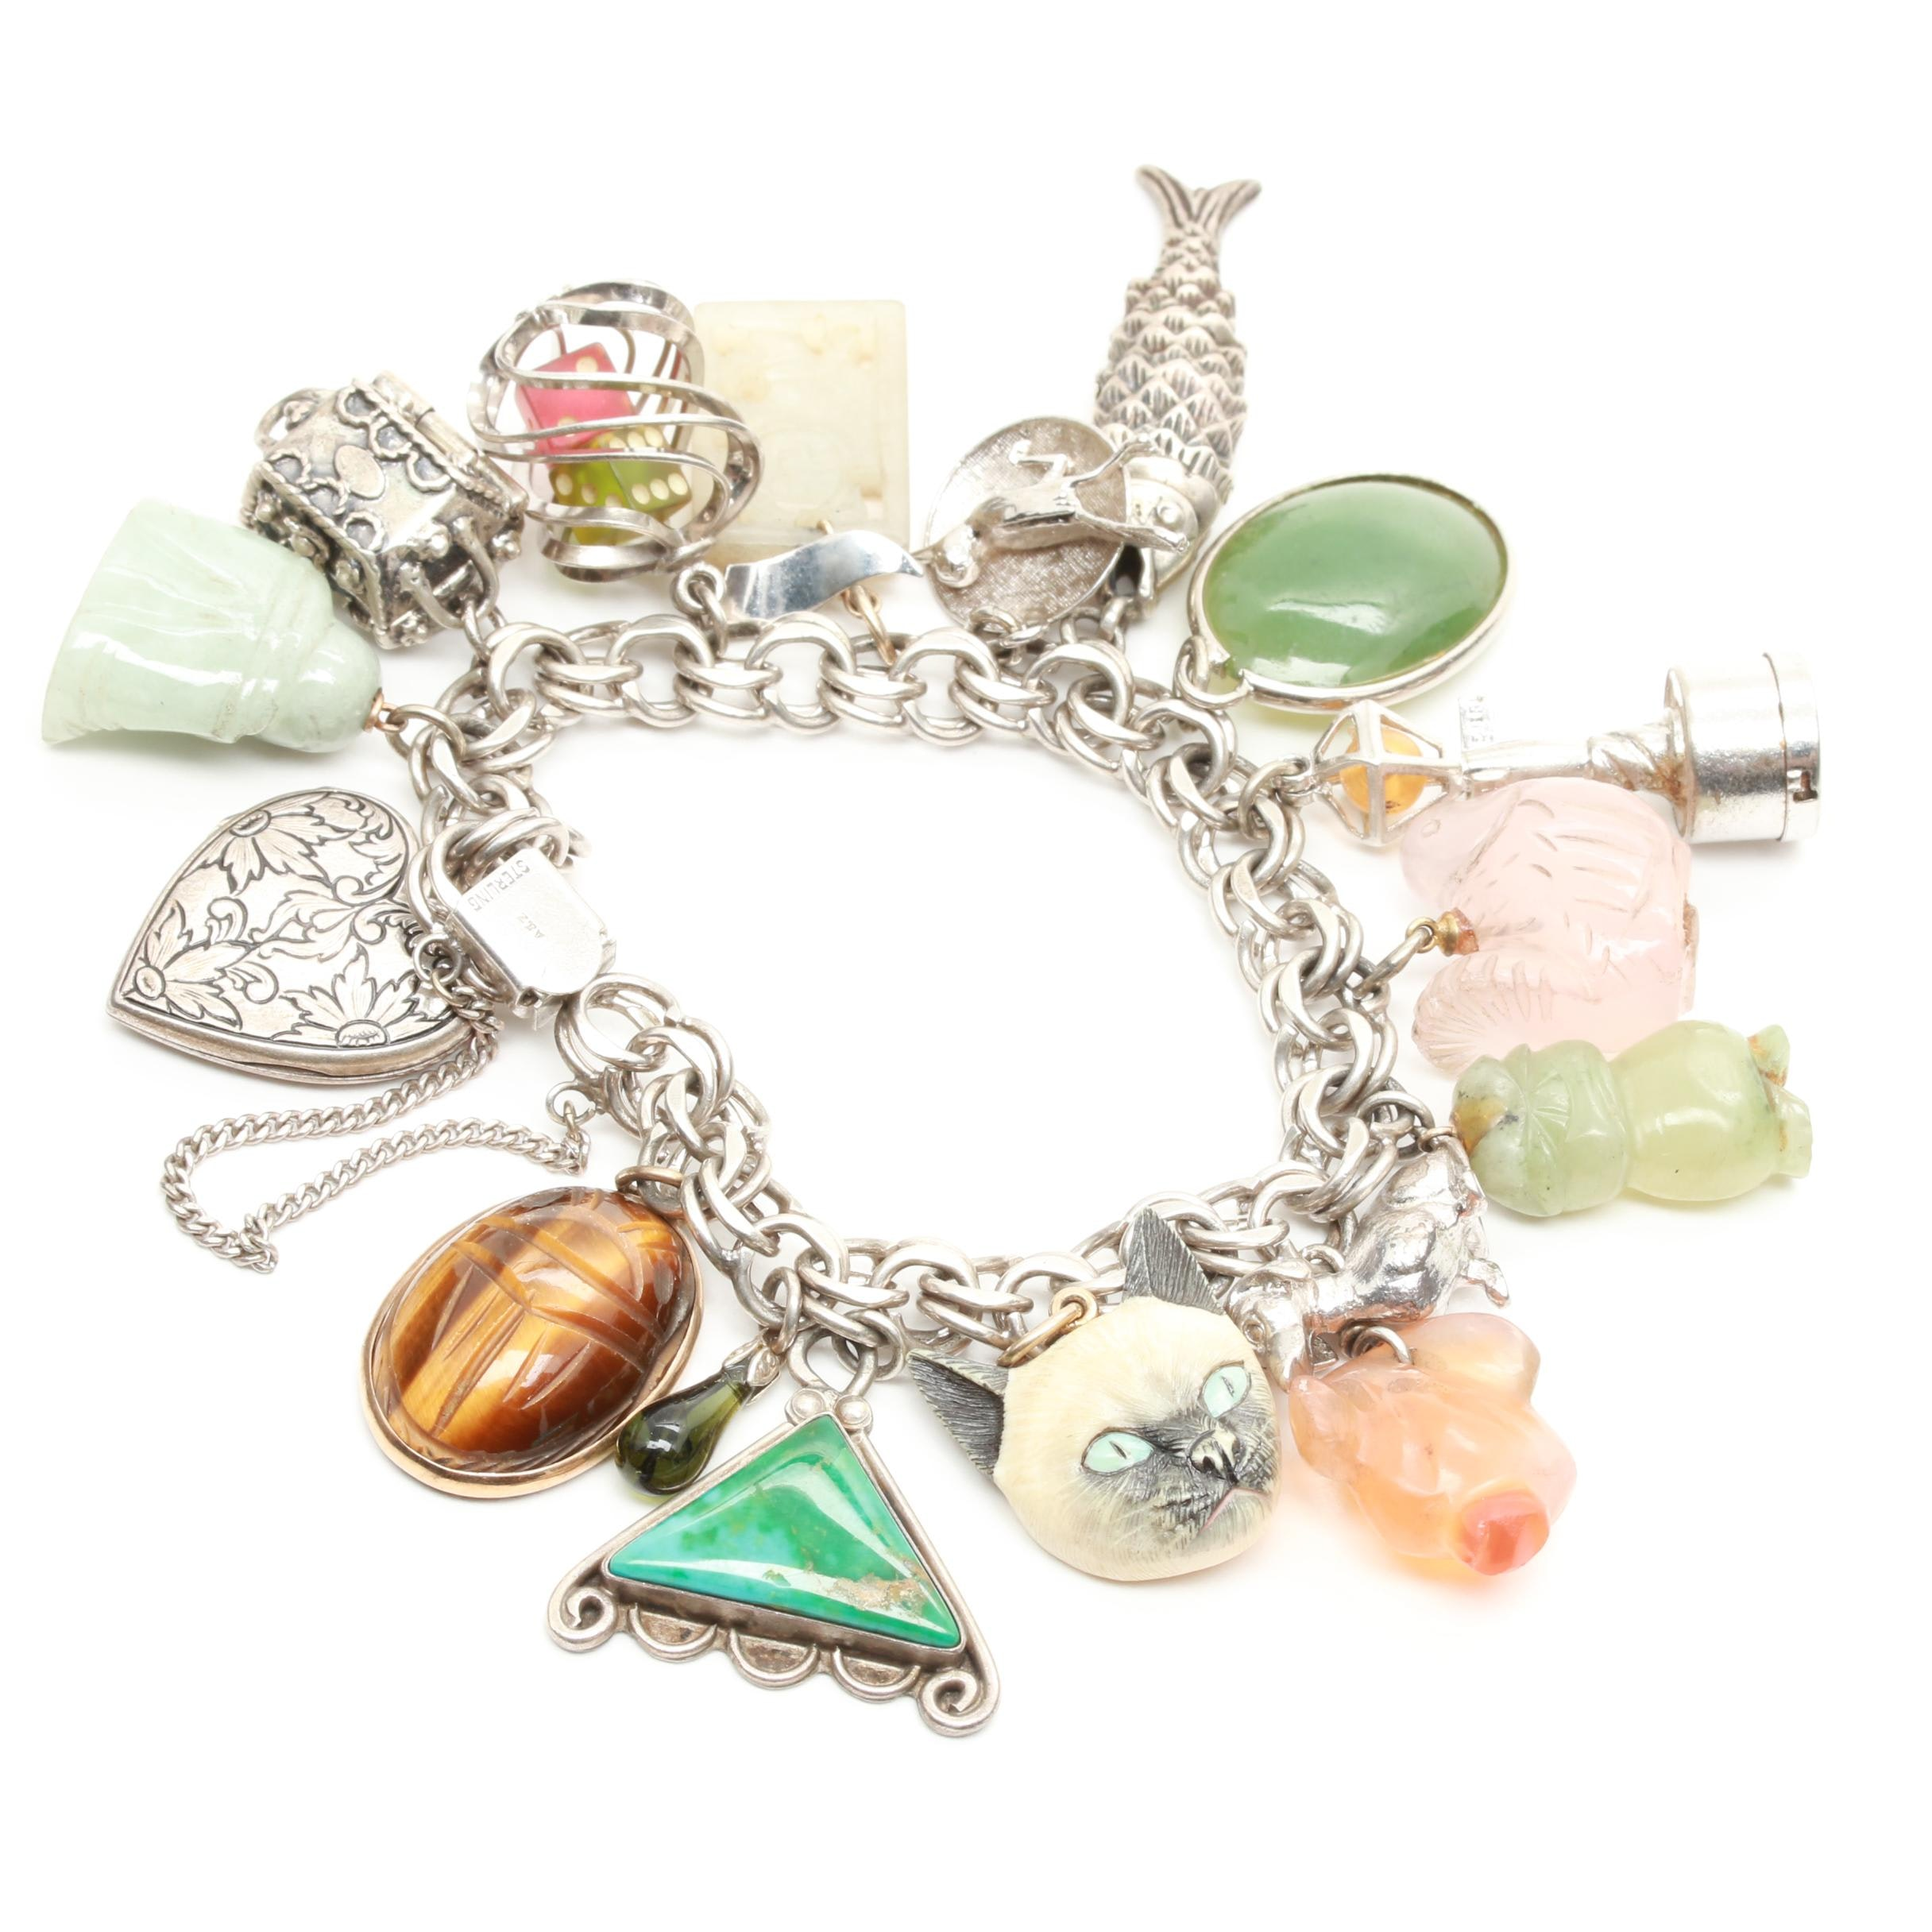 Sterling Silver Charm Bracelet Featuring Tiger's Eye, Agate, and Turquoise